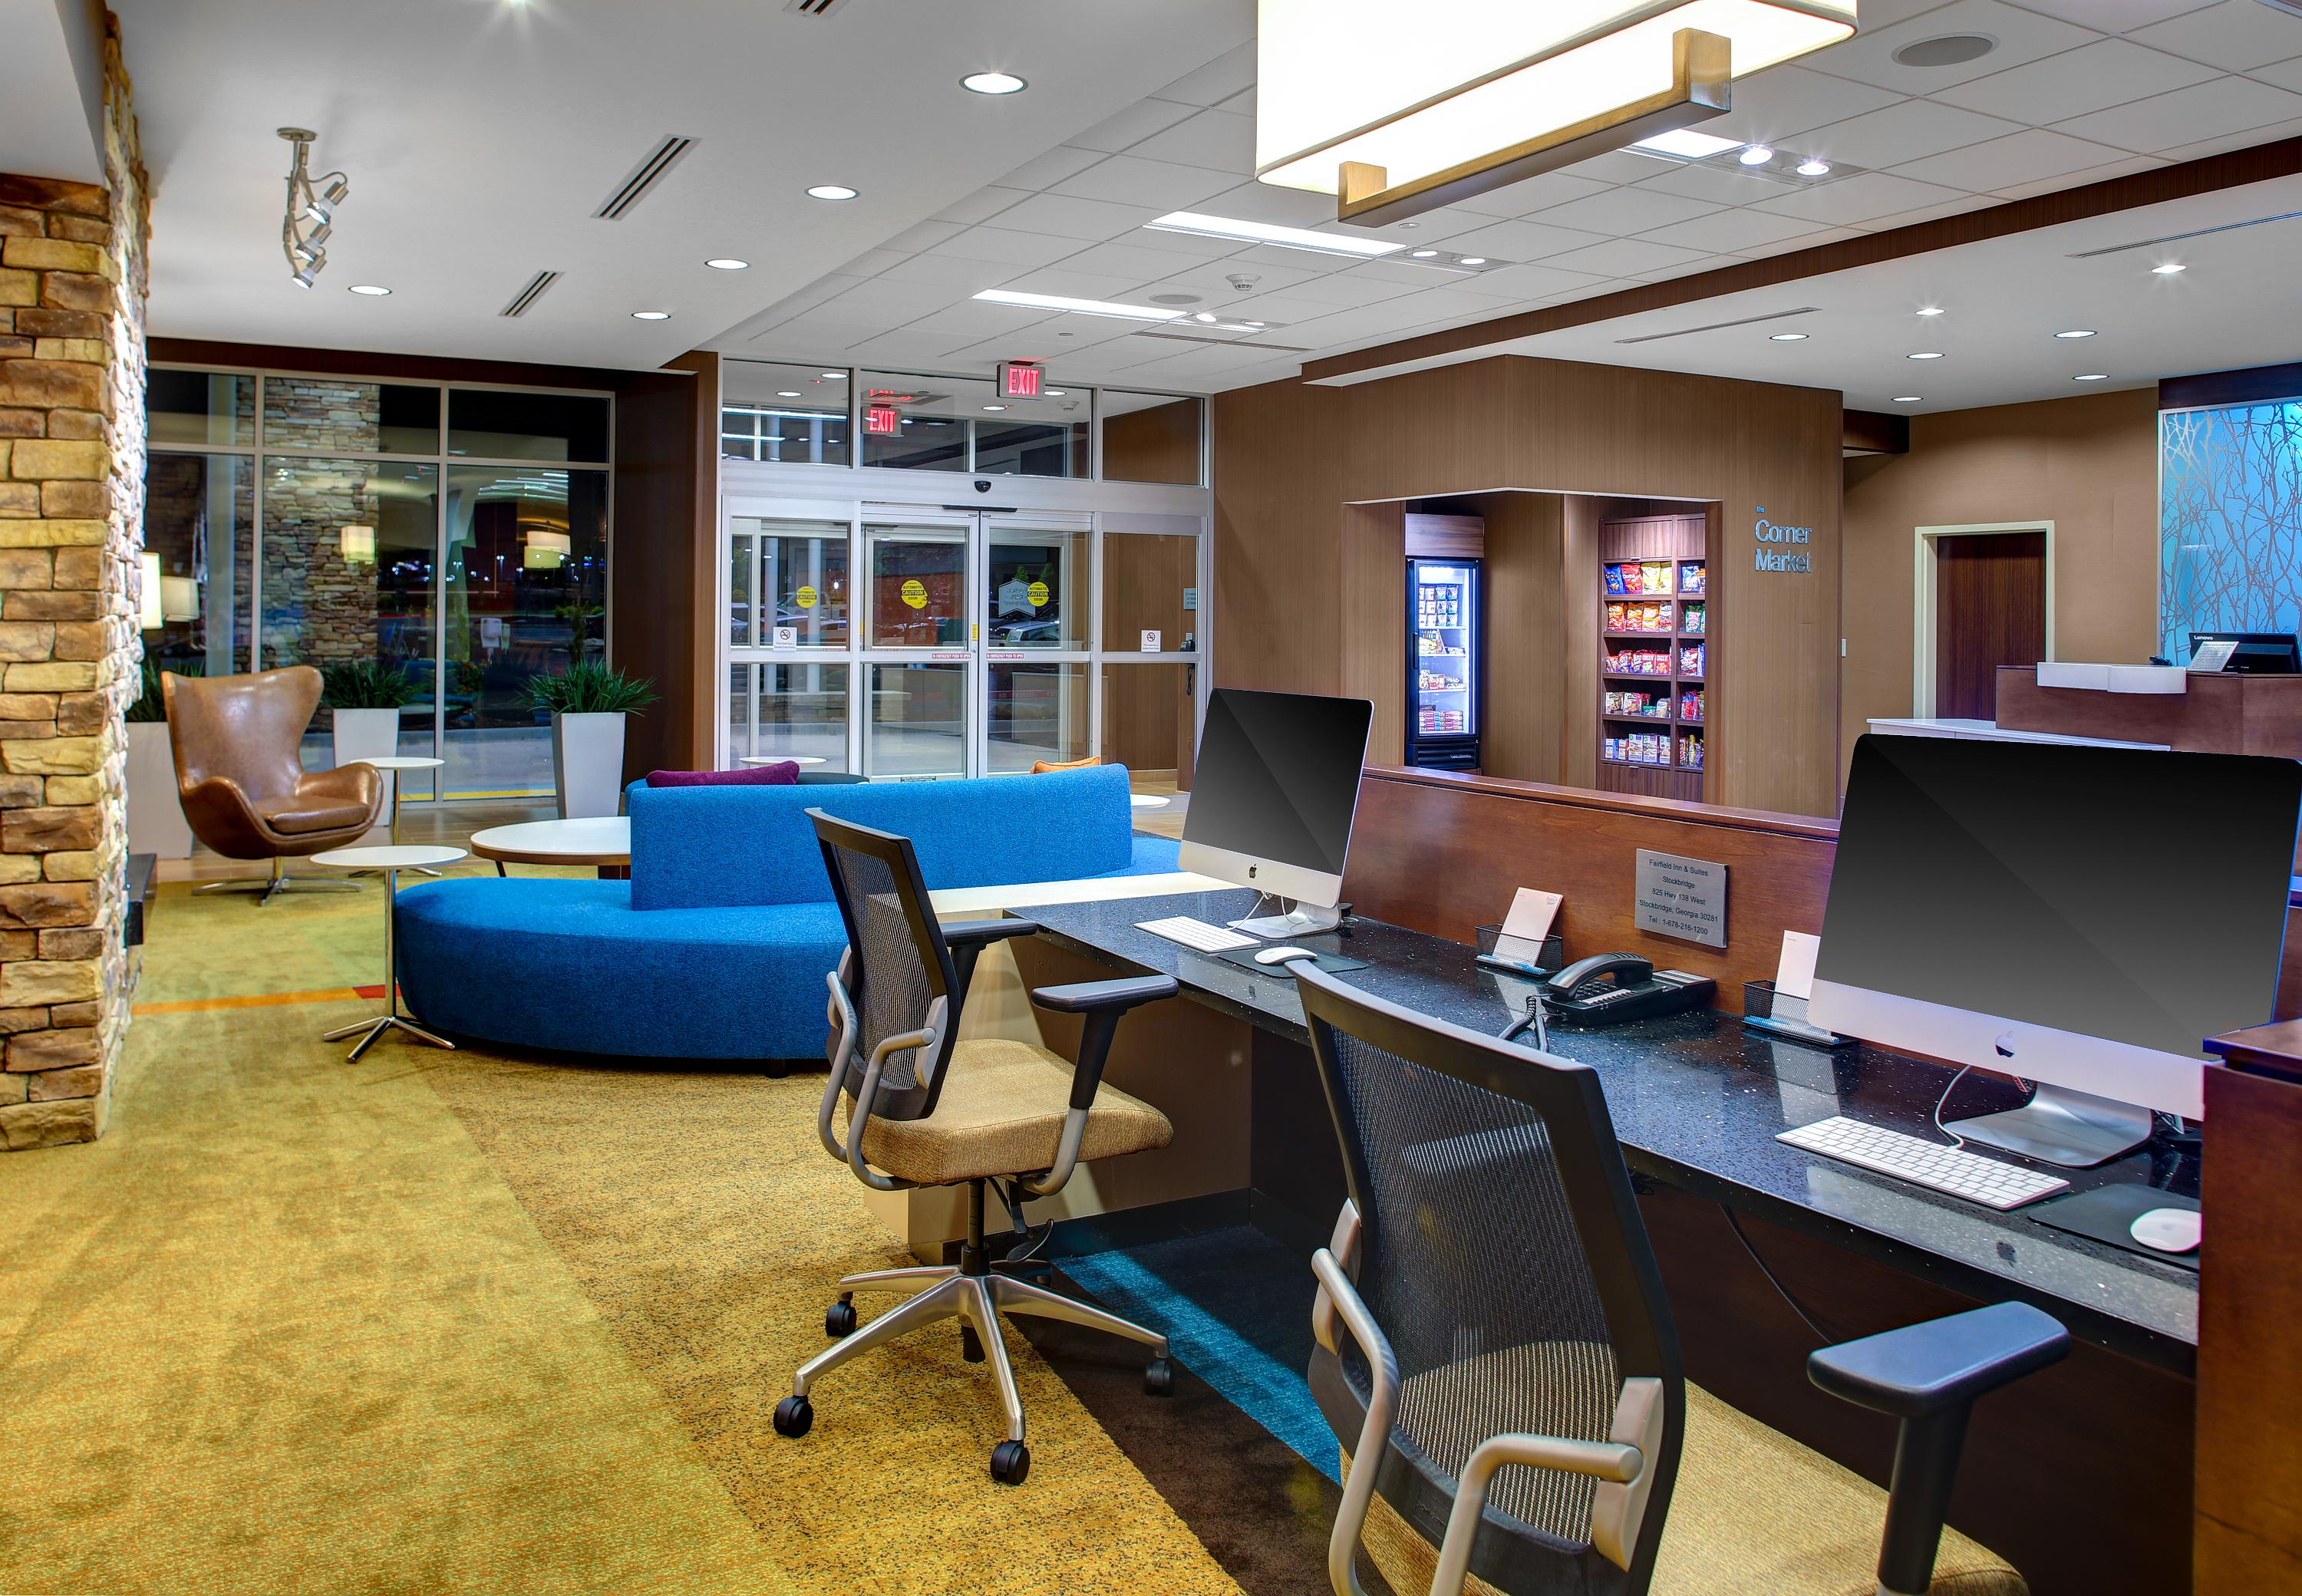 Fairfield Inn & Suites by Marriott Atlanta Stockbridge image 9